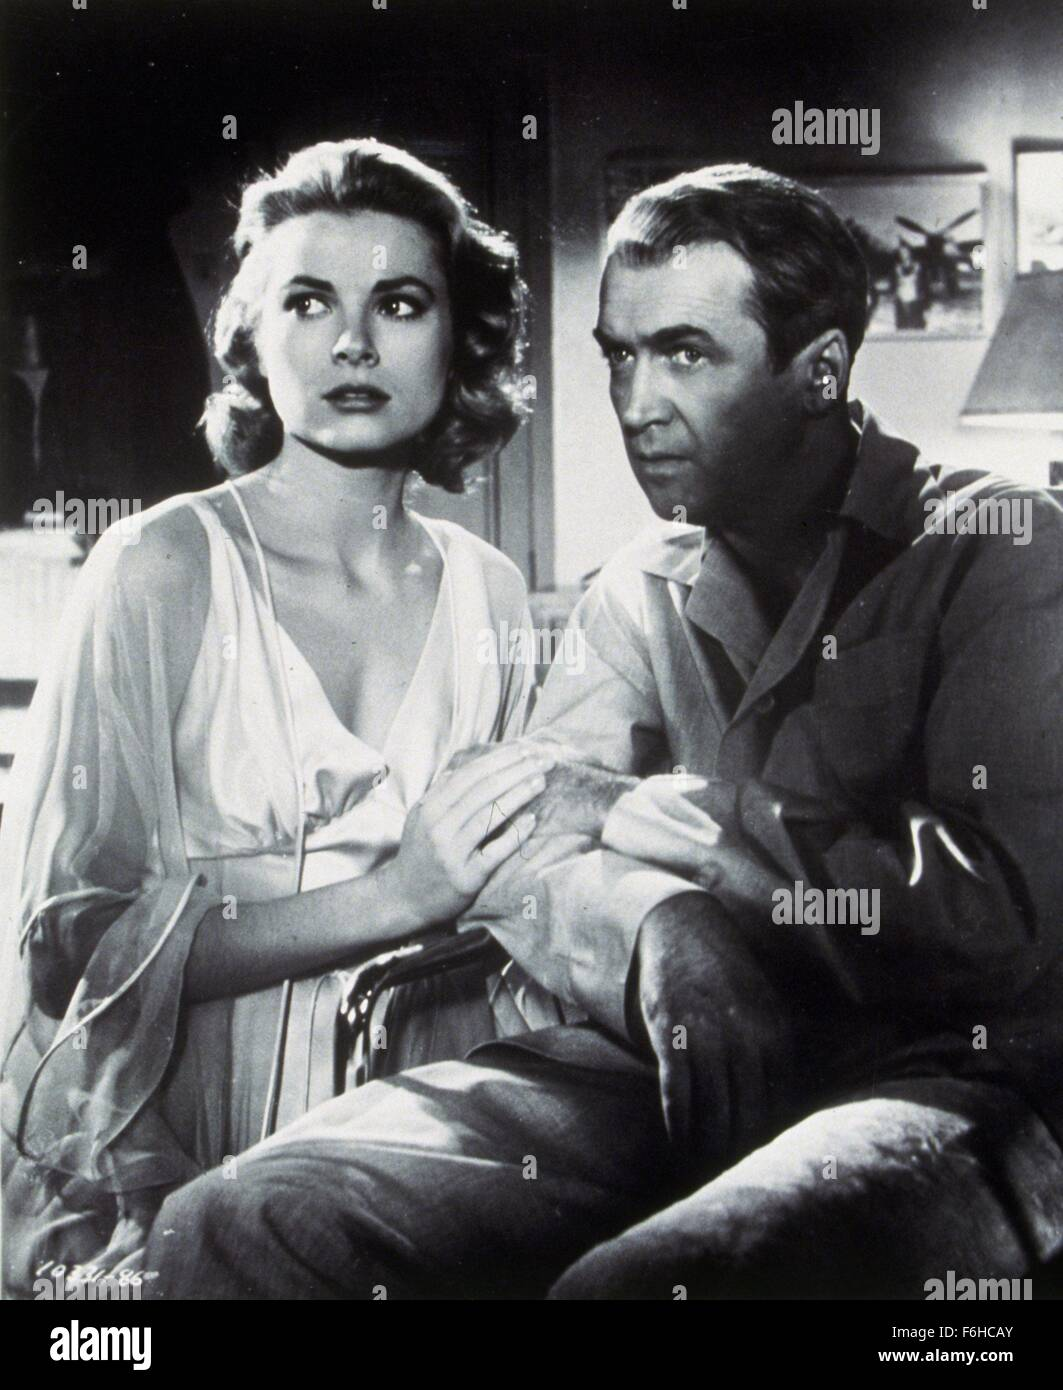 1954, Film Title: REAR WINDOW, Director: ALFRED HITCHCOCK, Studio: PARAMOUNT, Pictured: ALFRED HITCHCOCK, GRACE - Stock Image